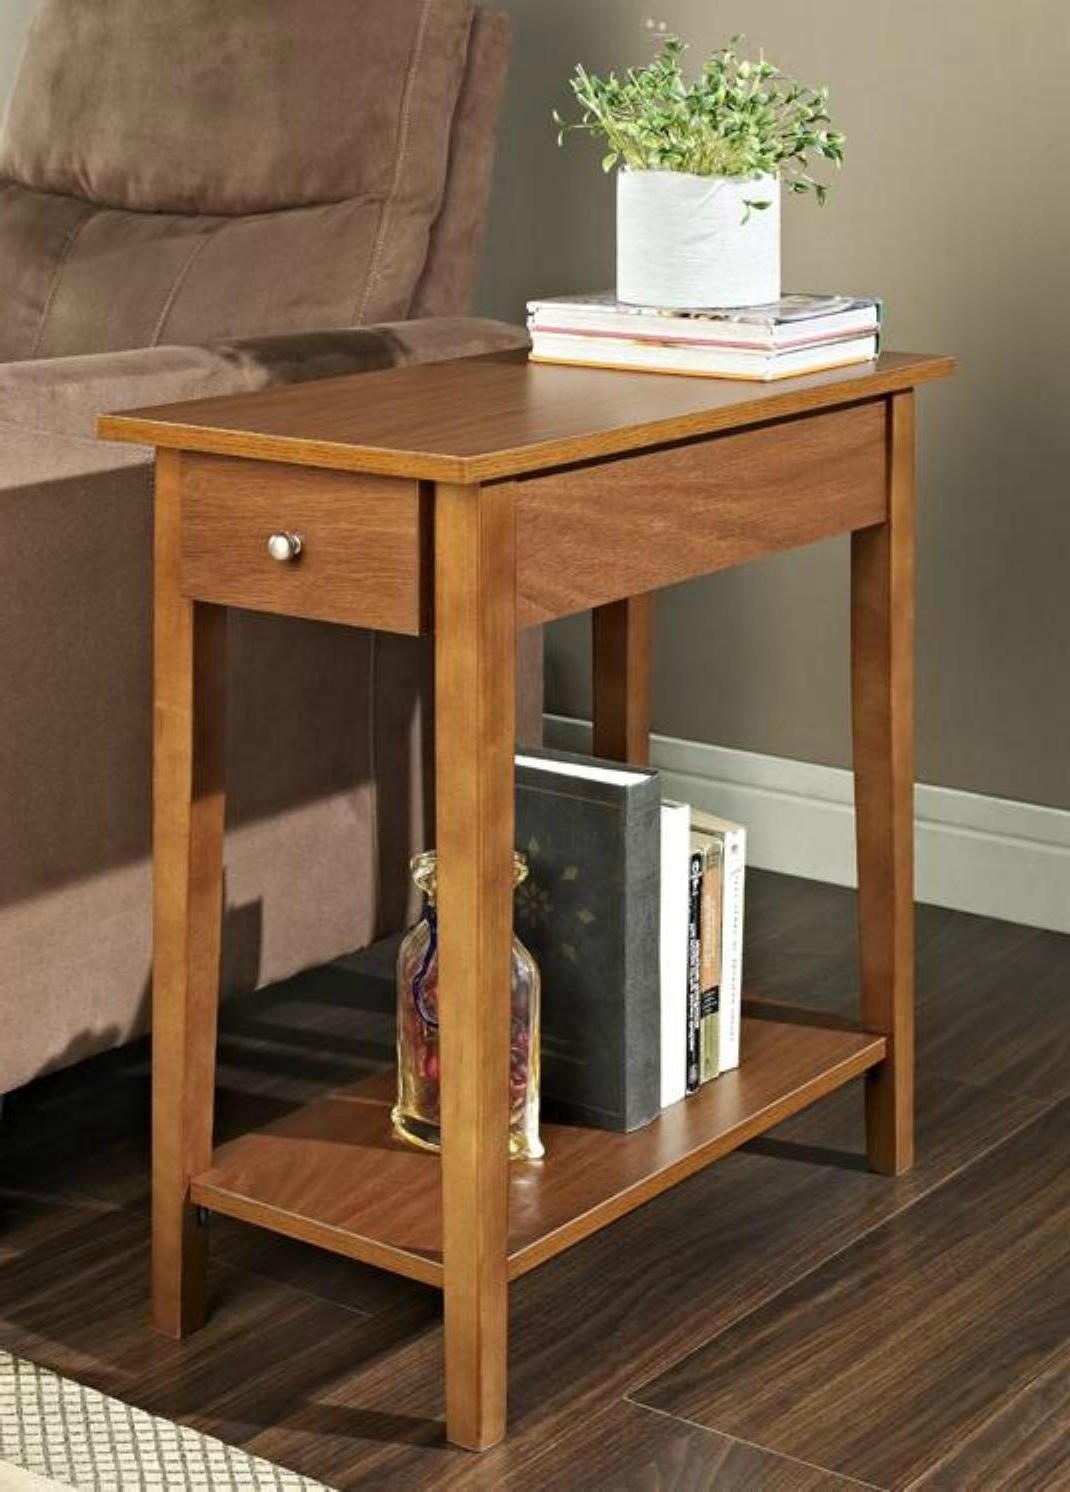 small wood cherry end tables with storage for living room side tables raysa house. Black Bedroom Furniture Sets. Home Design Ideas